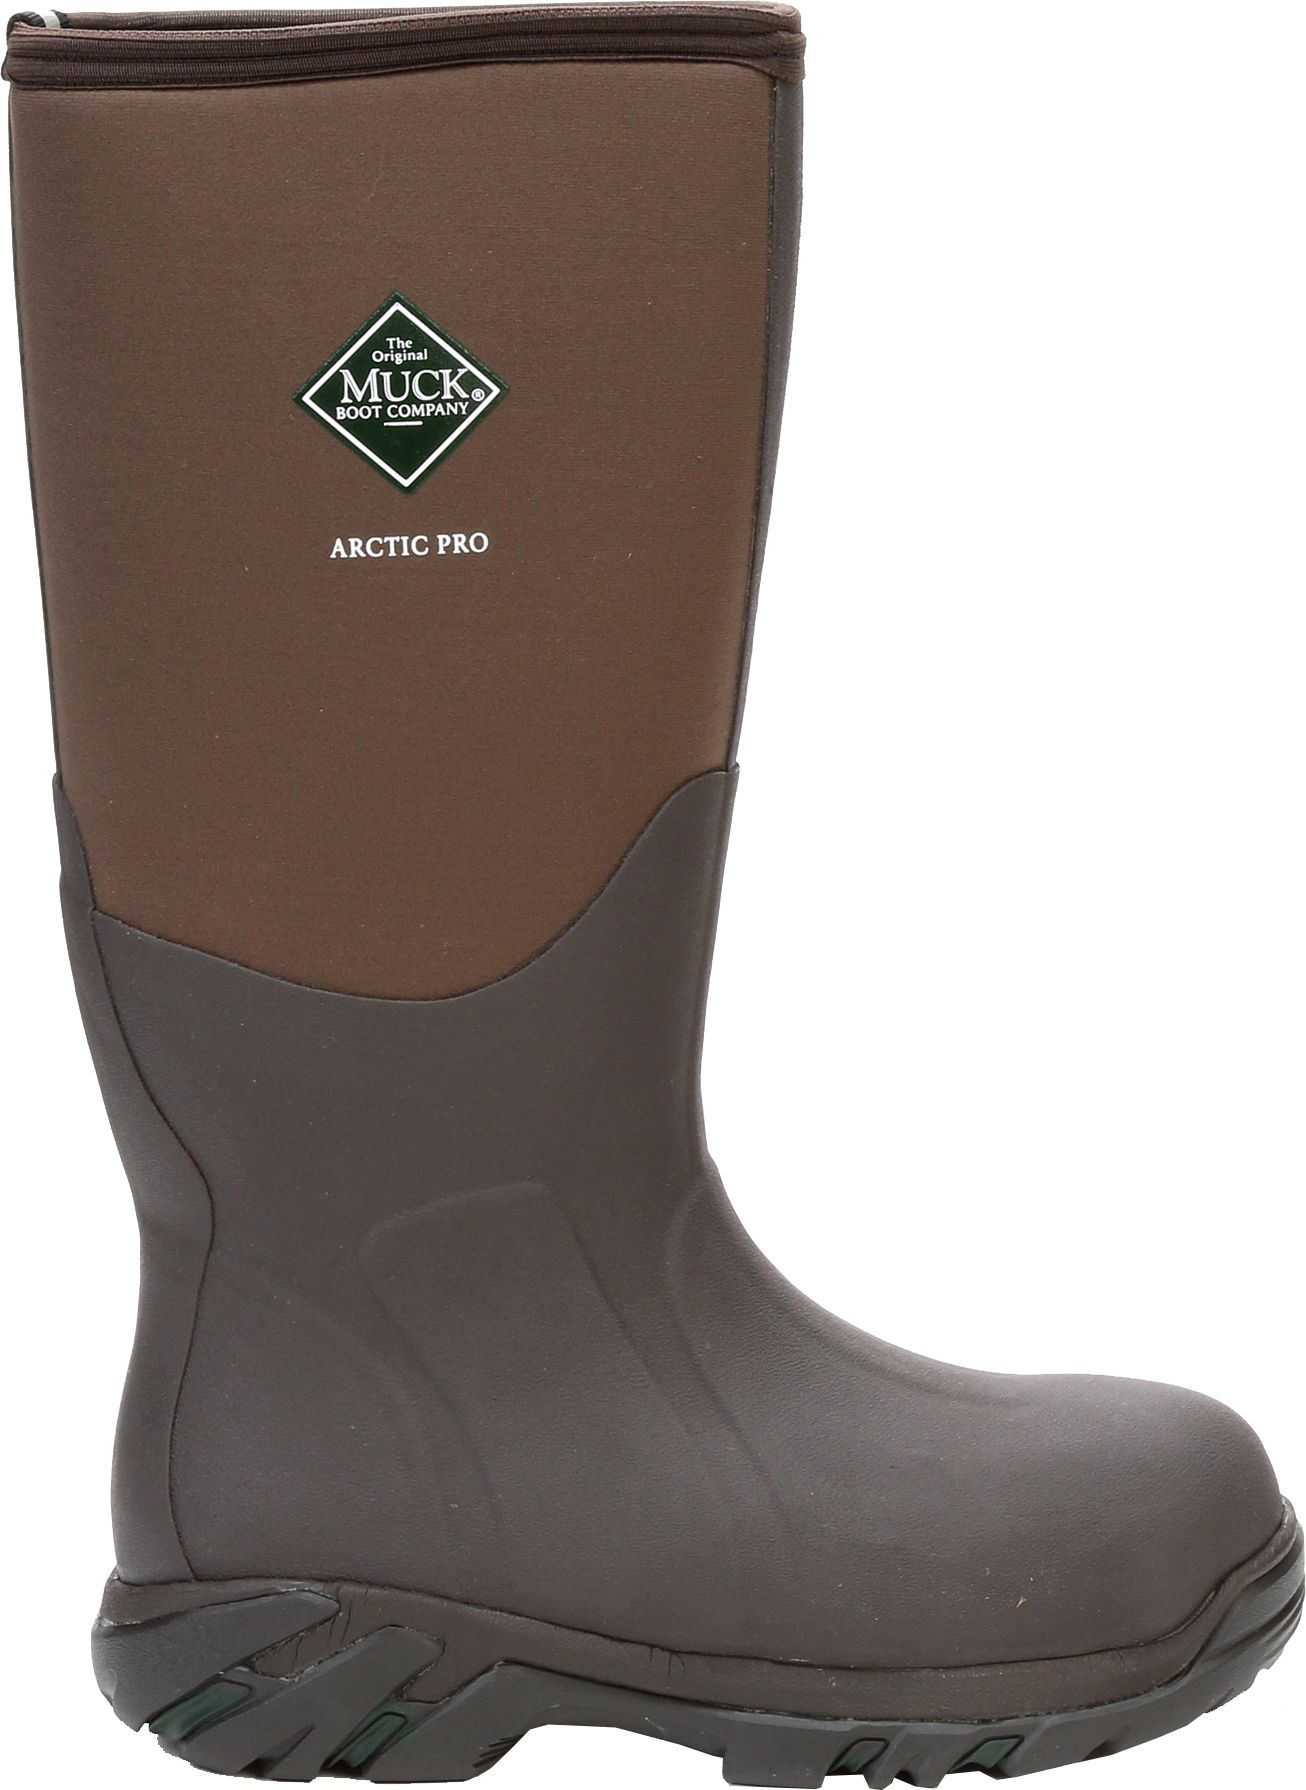 Search Results for muck at Tractor Supply Co. Muck Boot Company Men's Chore Tall Steel Toe Boot SKU # Product Rating is 5 () Delivery Offer! Click here for more details. Free In Store Pickup Standard Delivery Same Day Delivery. Delivery Offer!.